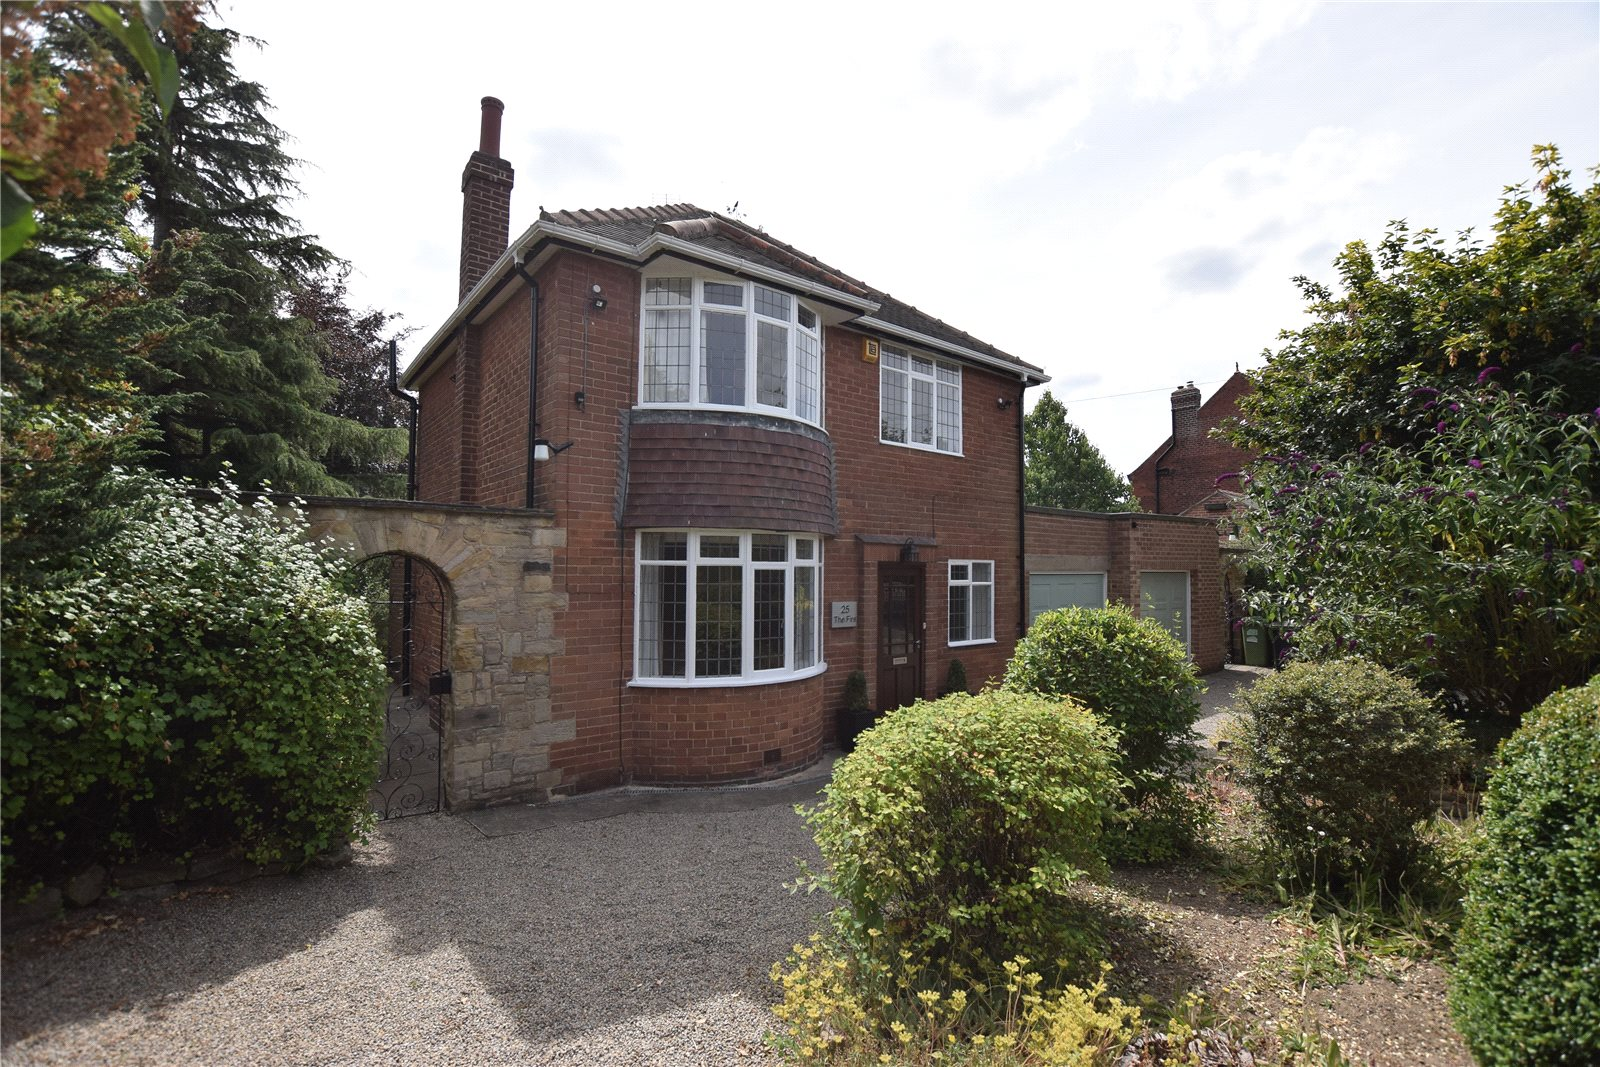 property to let in roundhay